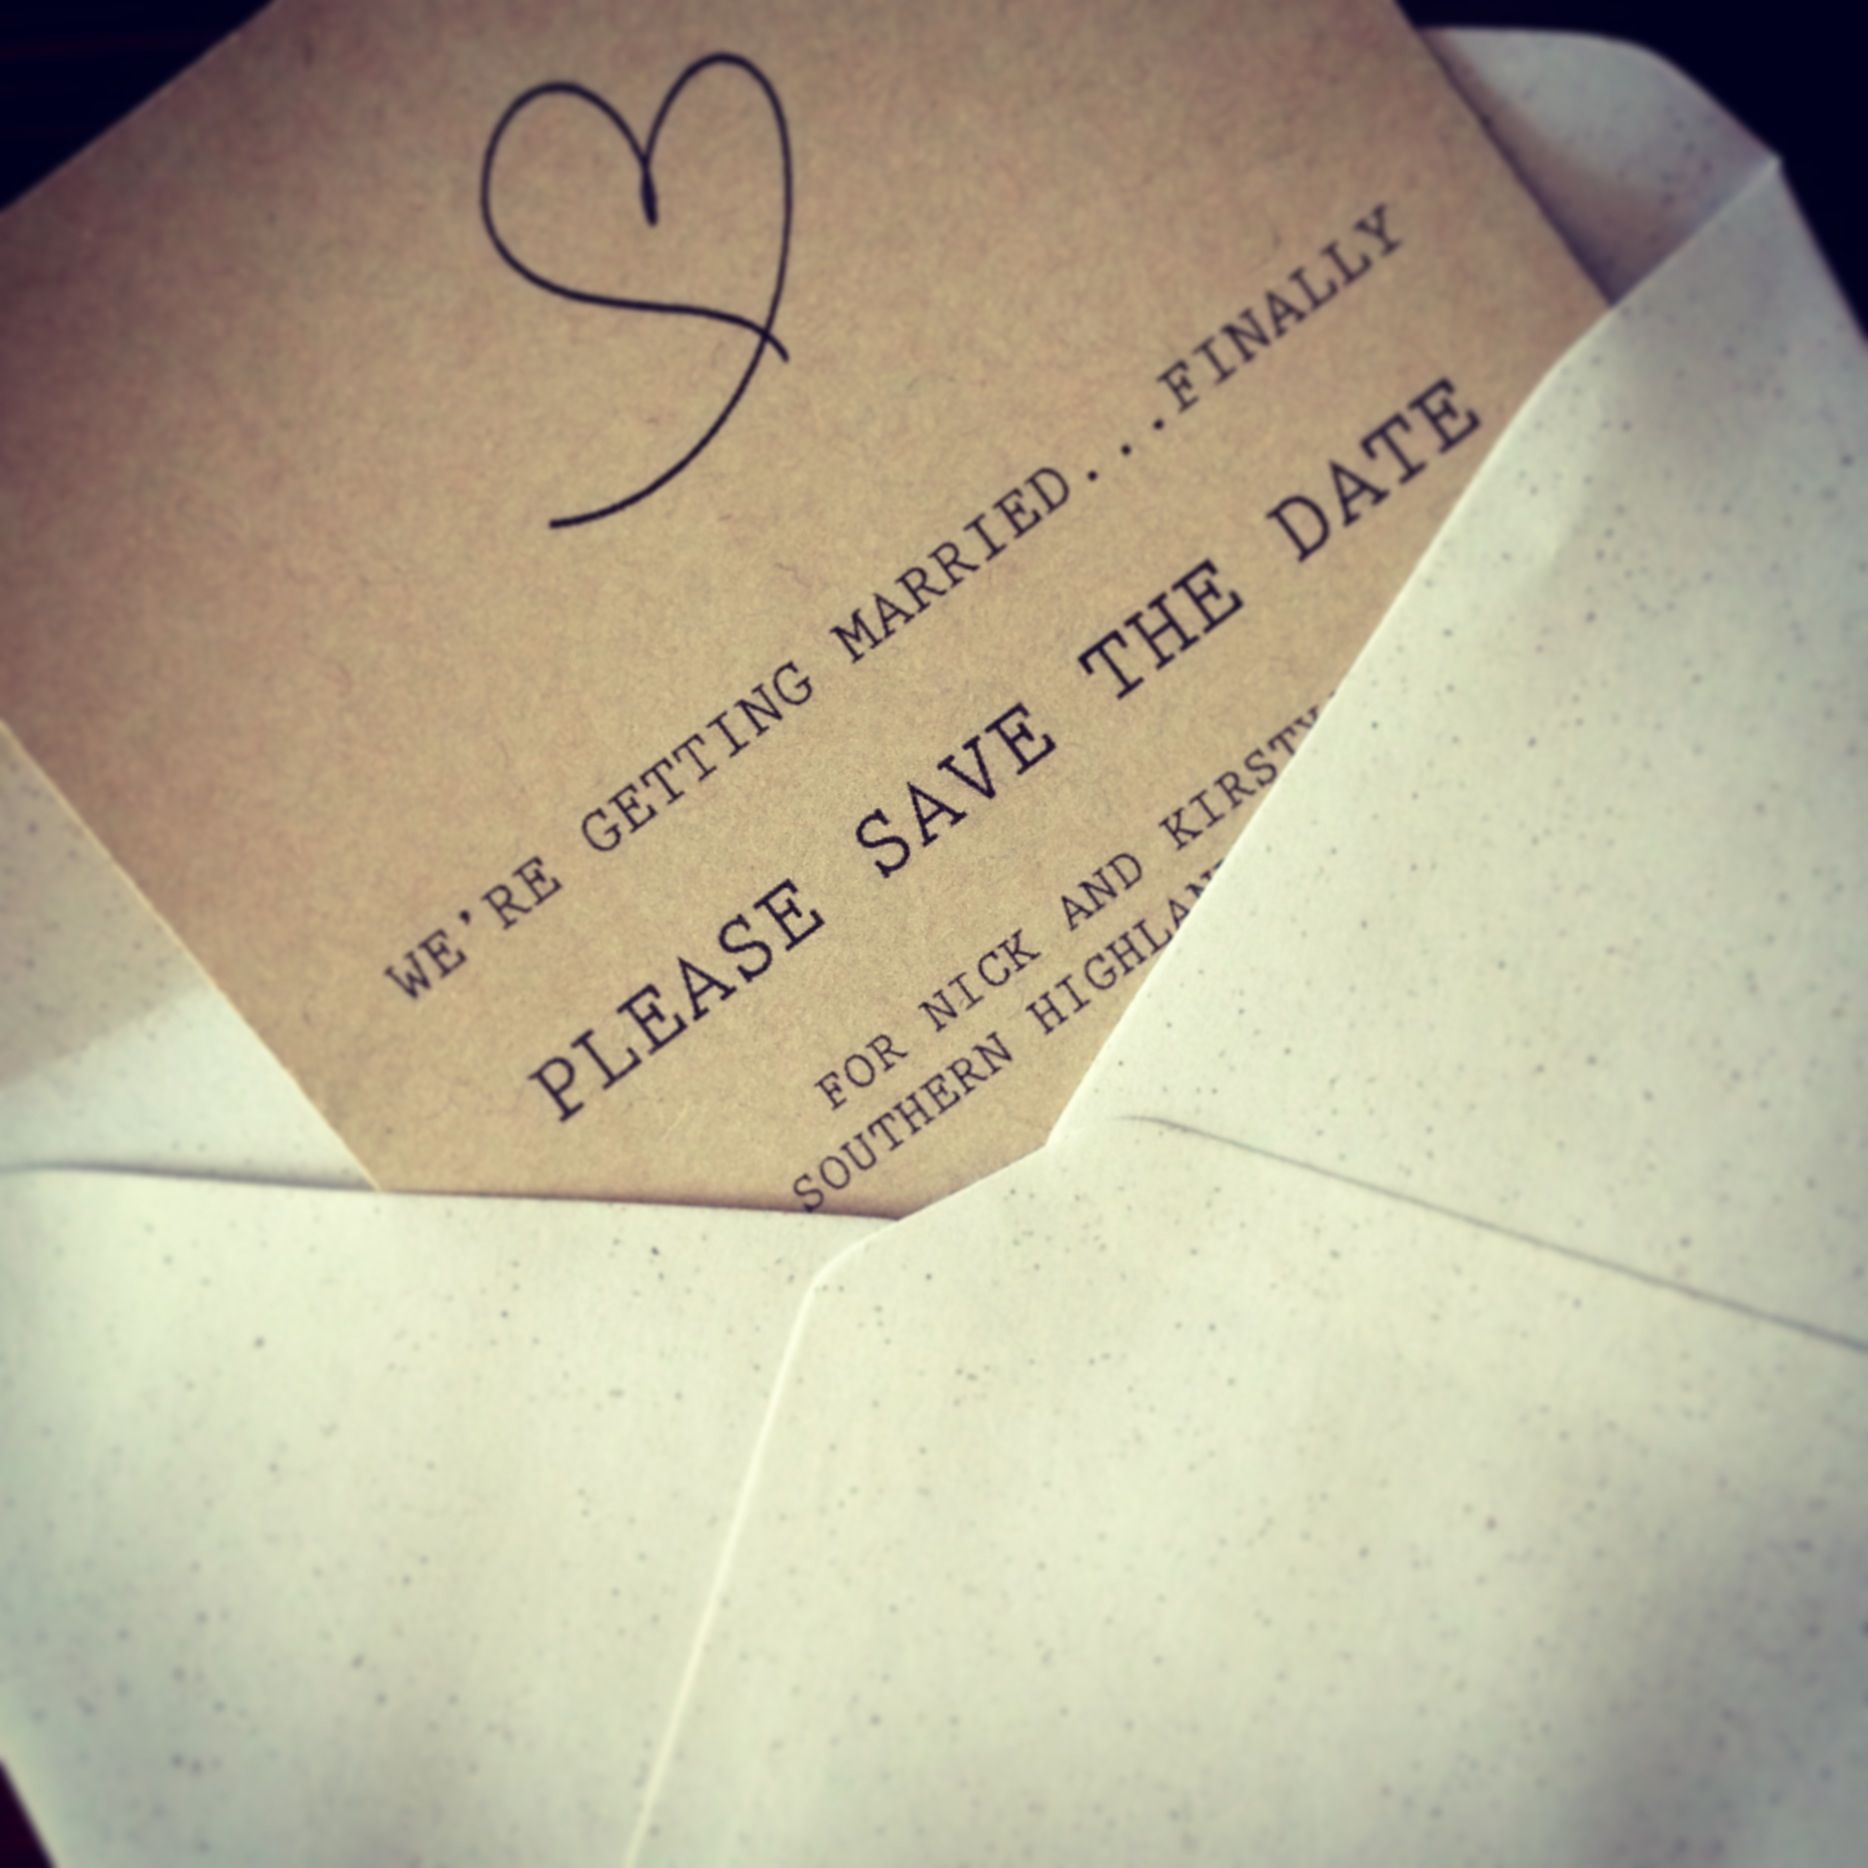 Speckled envelopes... Not matchy matchy but complimentary.